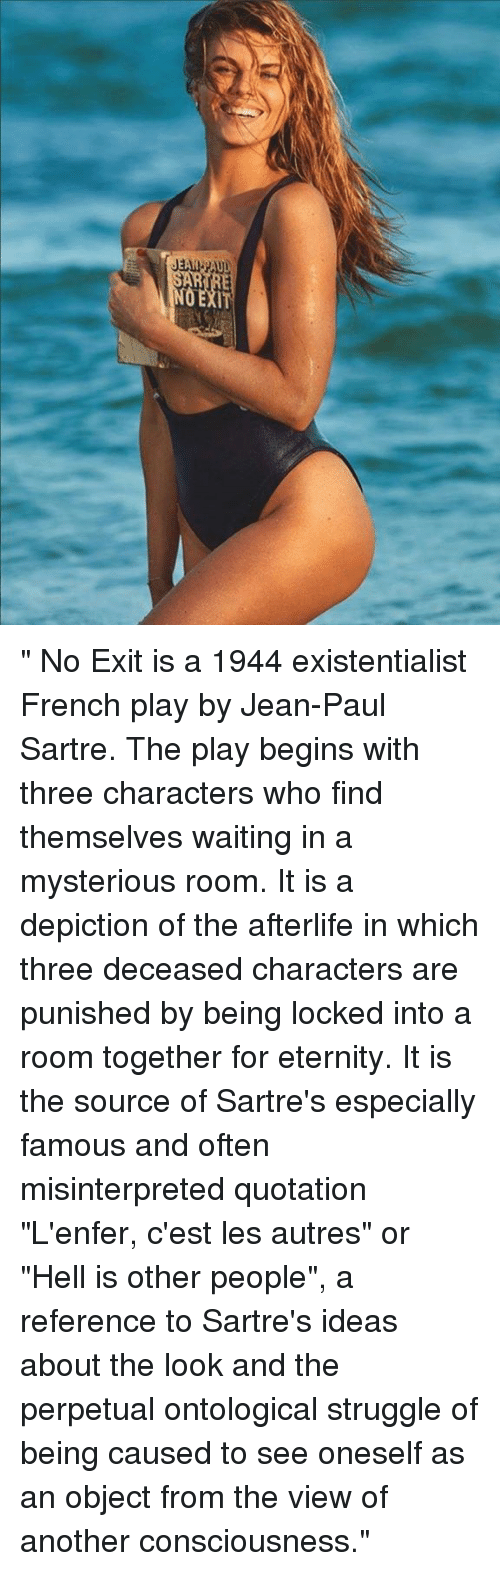 the basic themes of existentialism in the play no exit by jean paul sartre